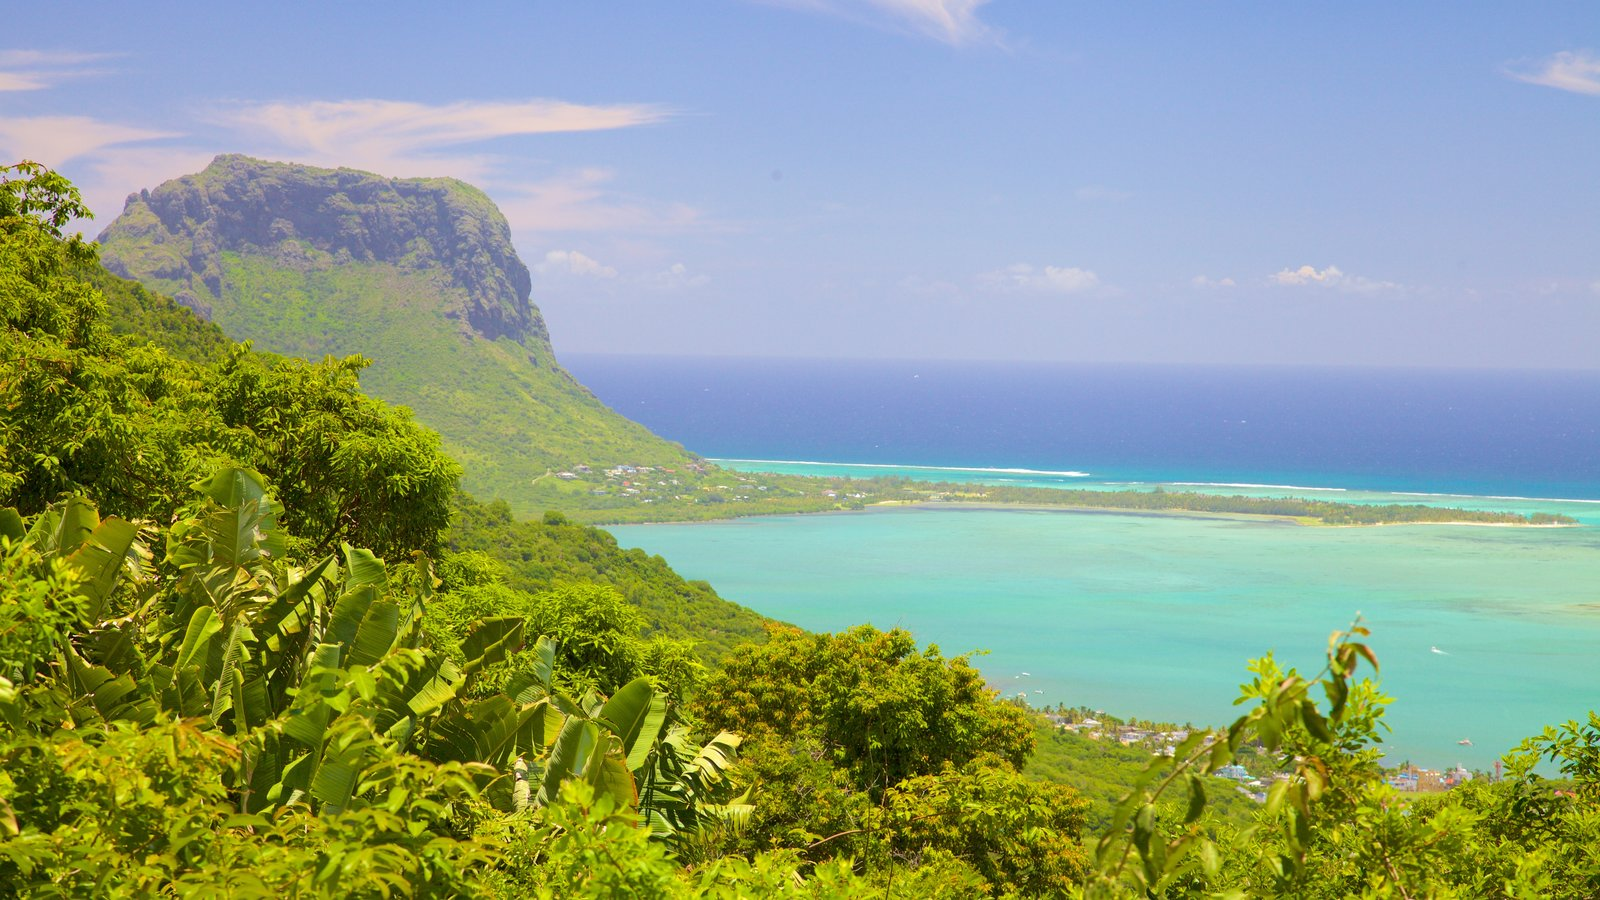 Le Morne Pictures View Photos Images Of Afrika Et Tour Horseback Riding Which Includes Mountains A Bay Or Harbor And Landscape Views